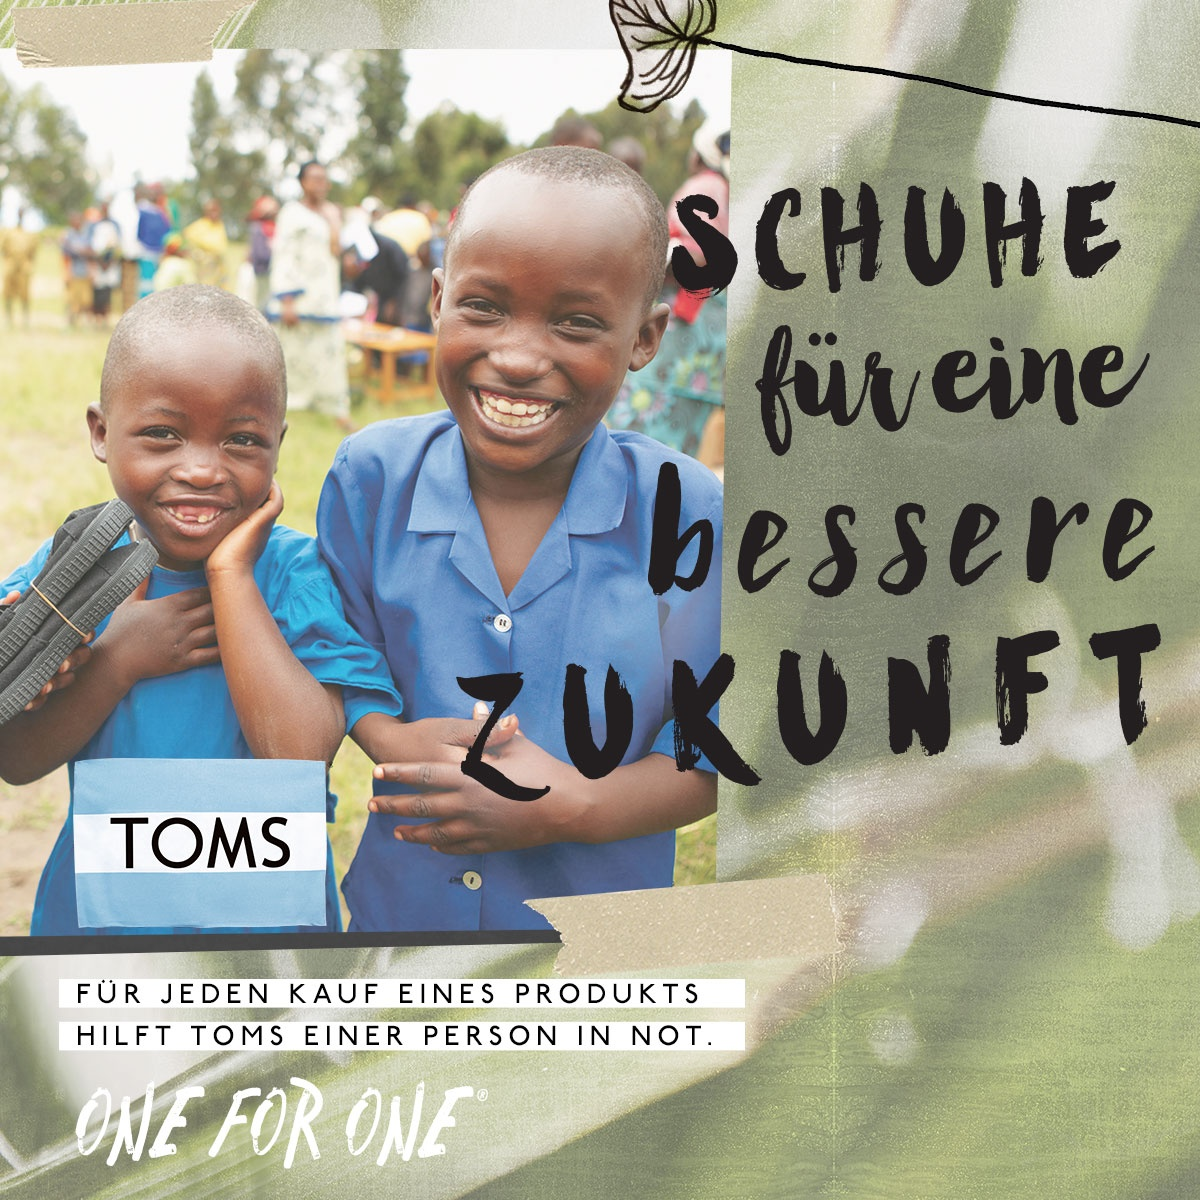 TOMS Virtual Reality Reise